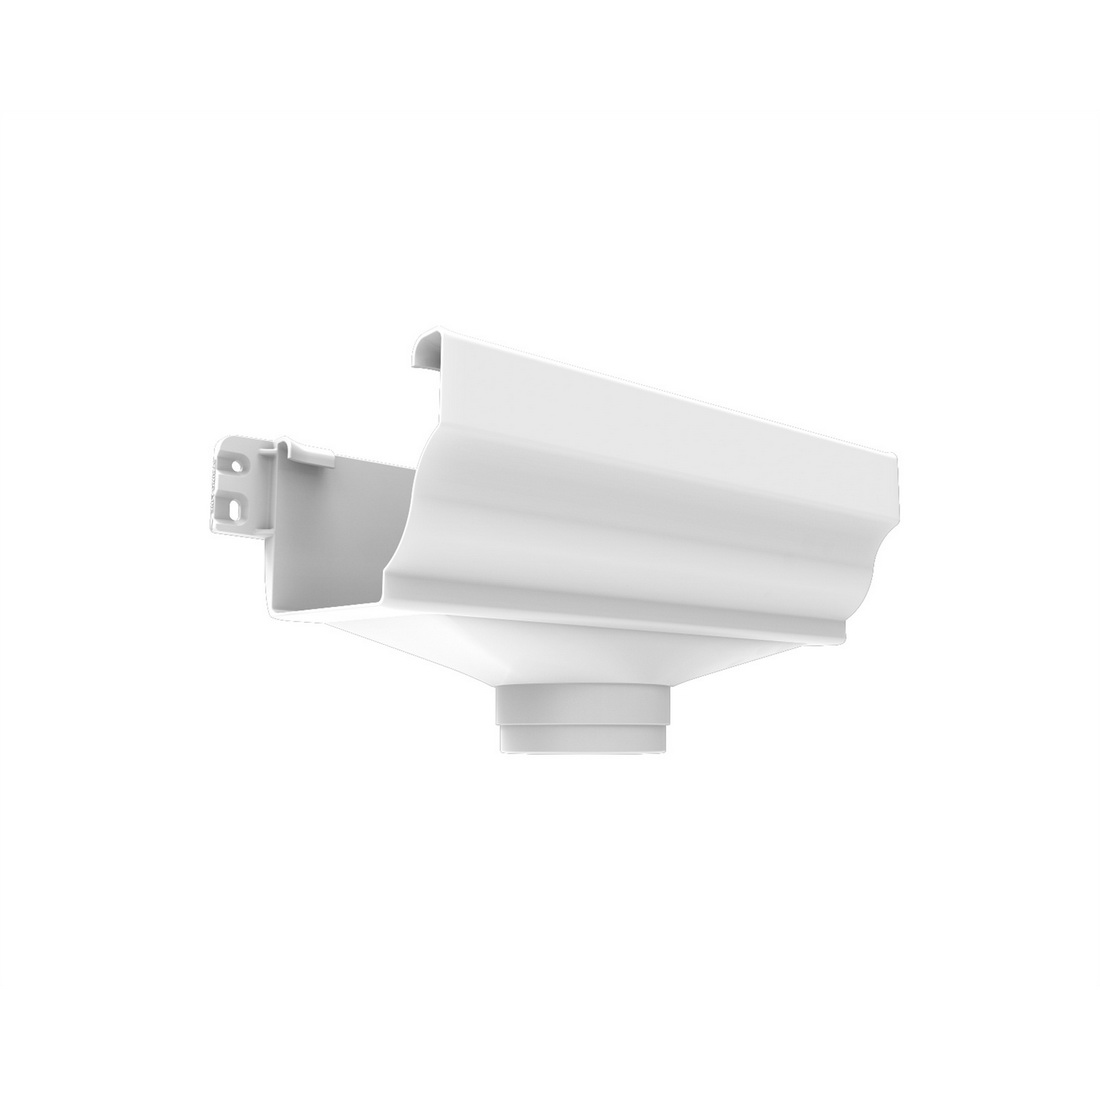 Marley Classic Spouting Expansion with Plate Outlet 80 x 210 x 130 mm White MC8.80